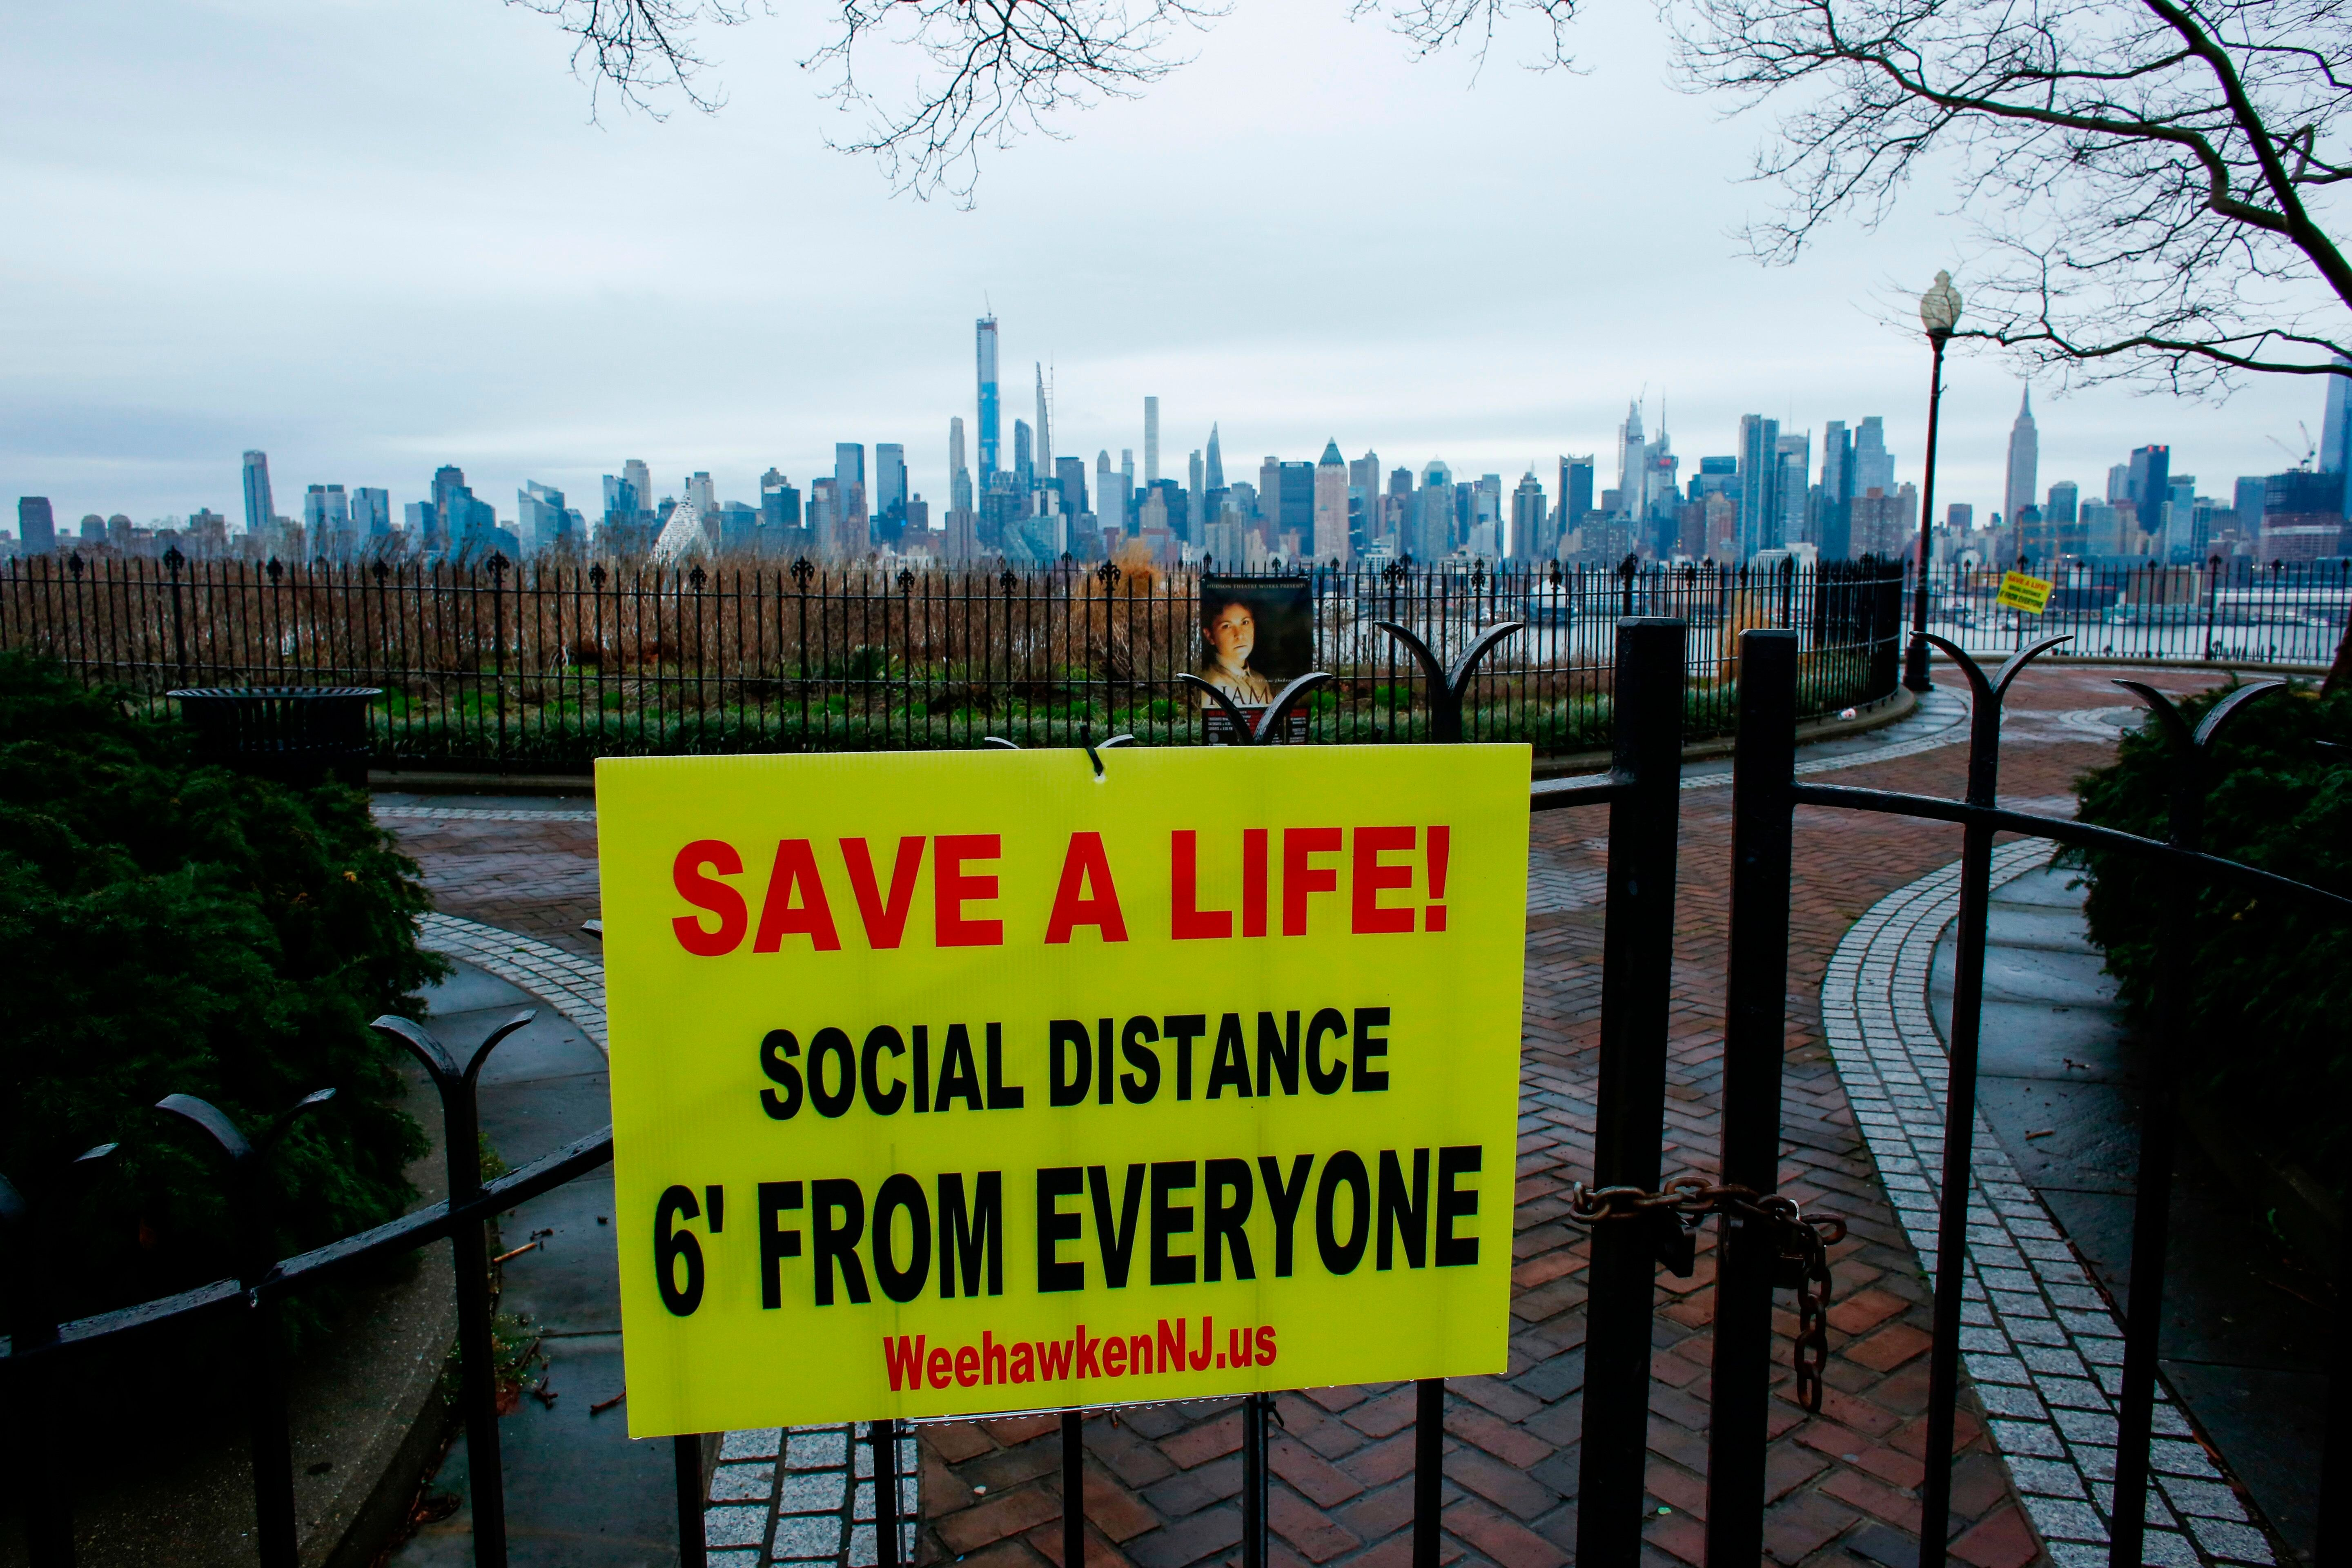 A sign encouraging social distancing to stop the spread of coronavirus is displayed at a closed park in Weehawken, New Jersey